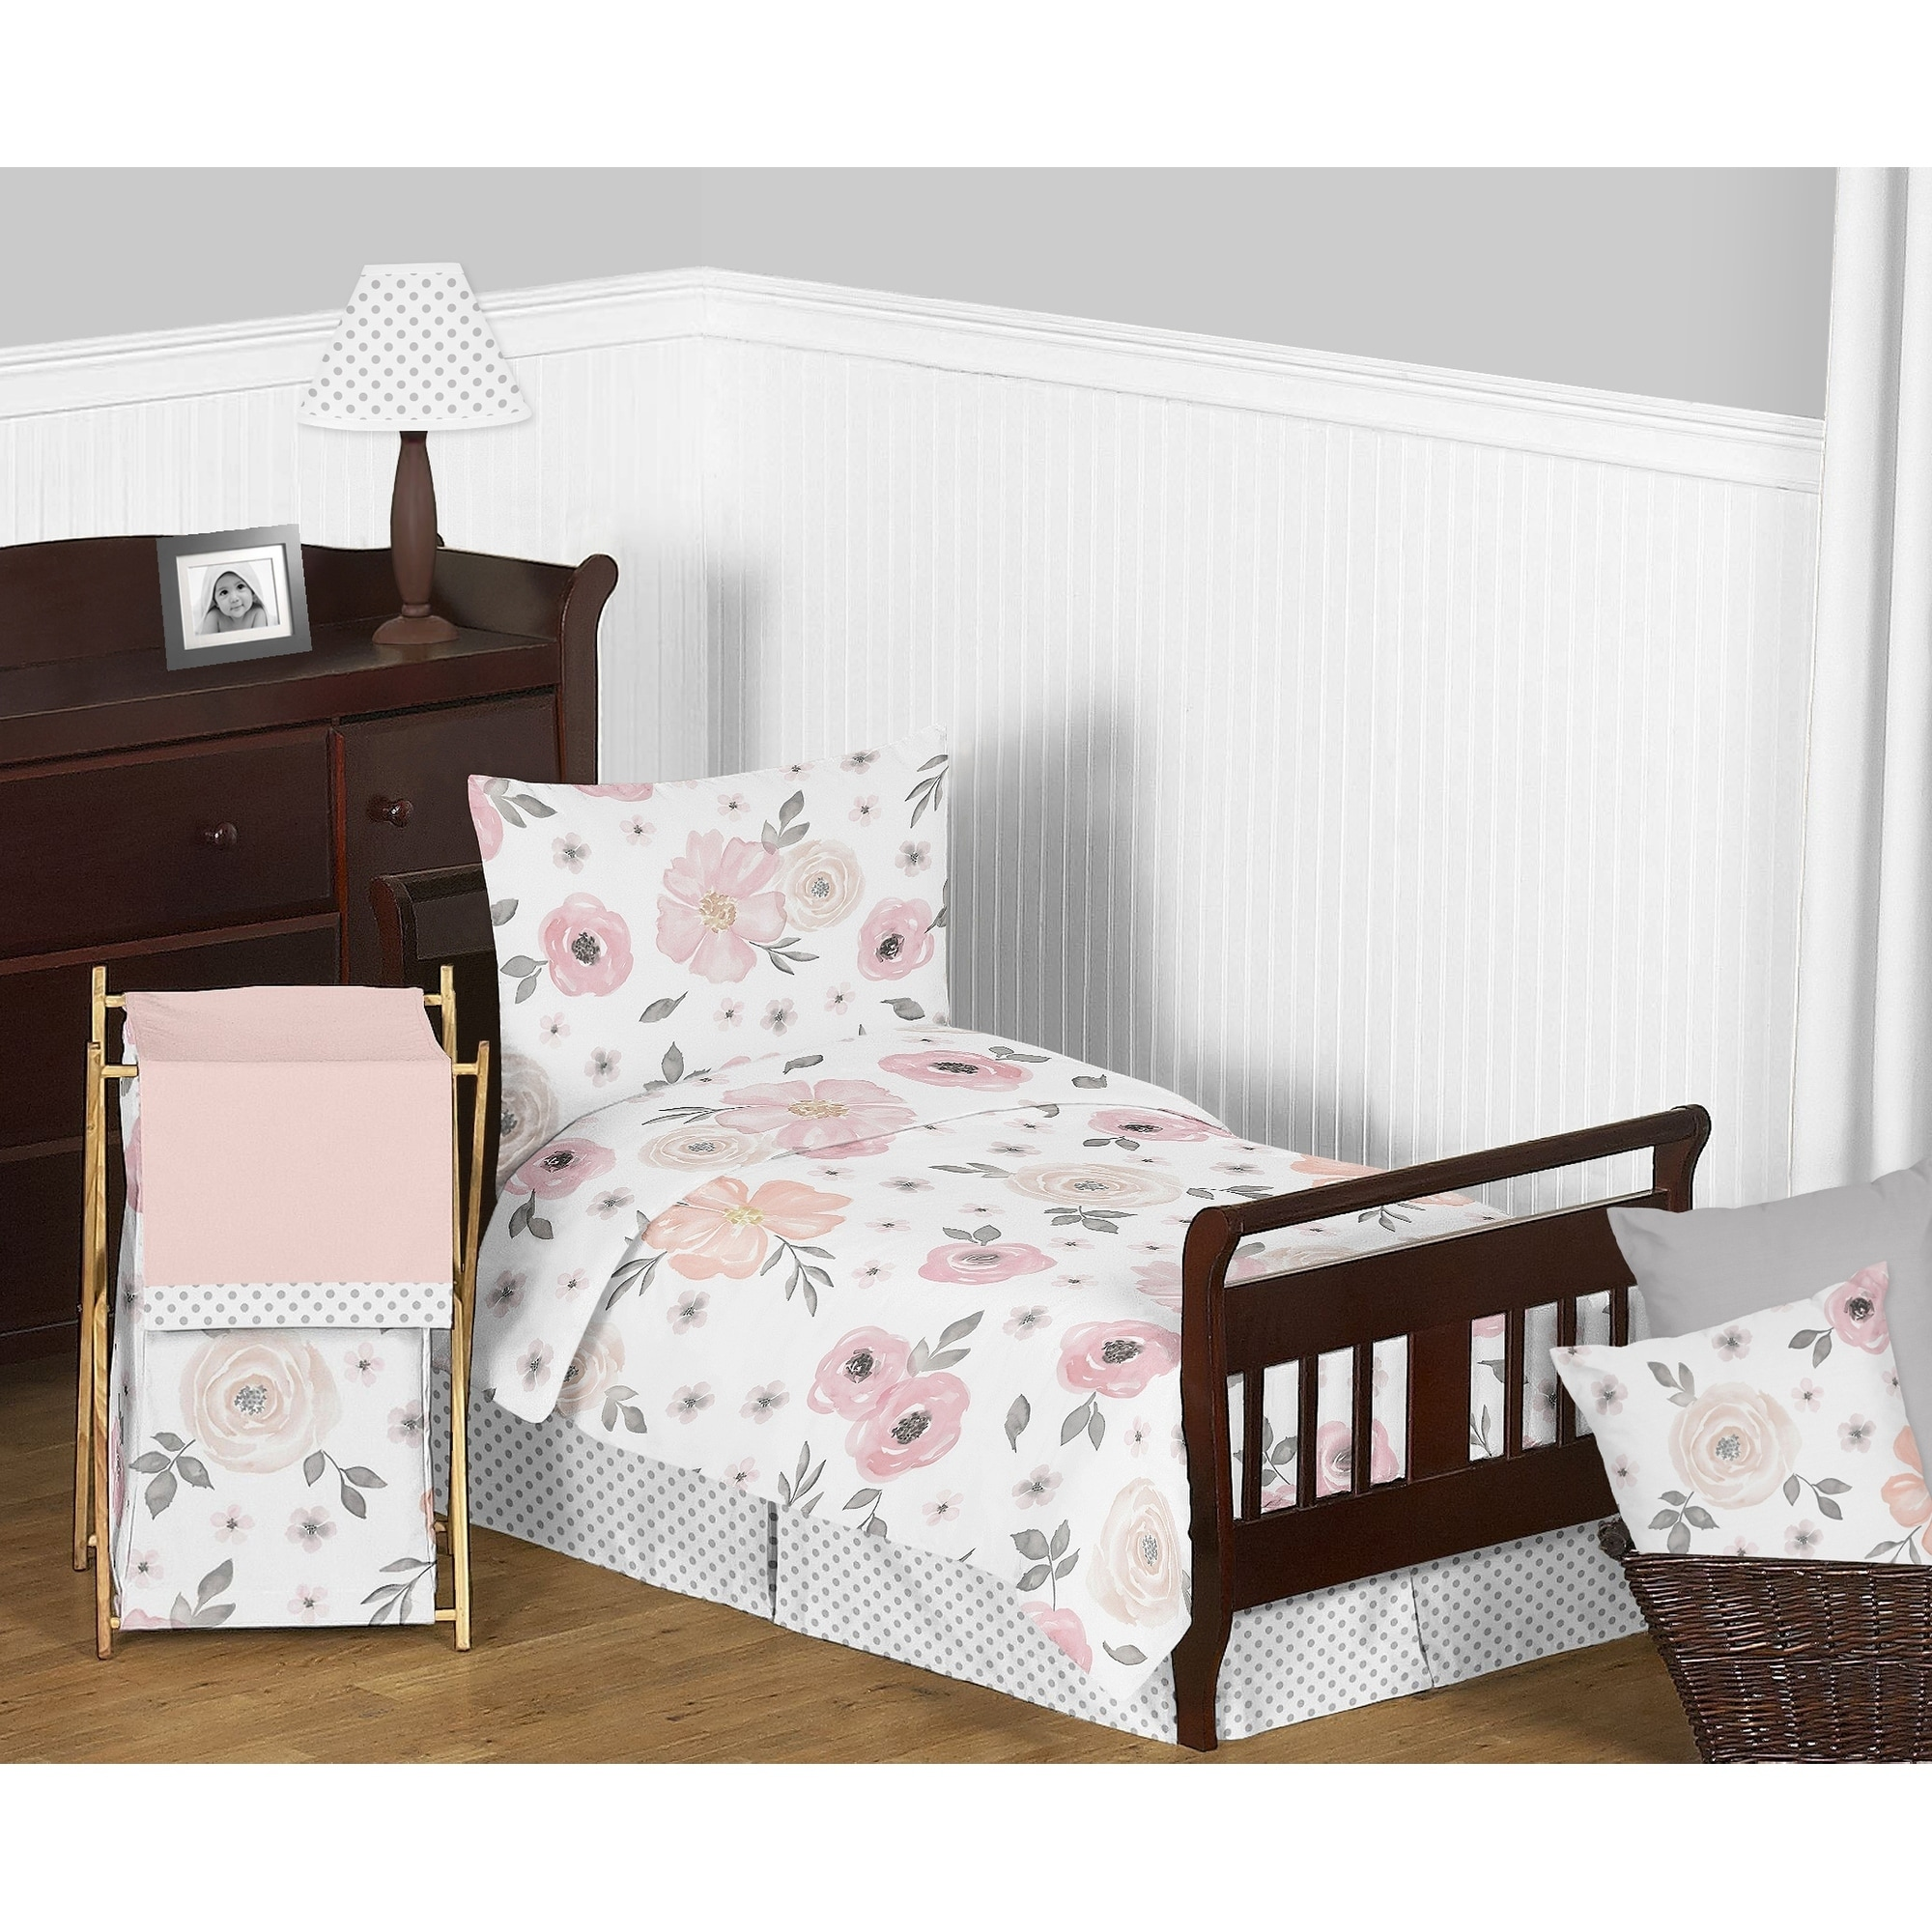 pink ecrins to girls comforter lodge sweet for blush young back teen set